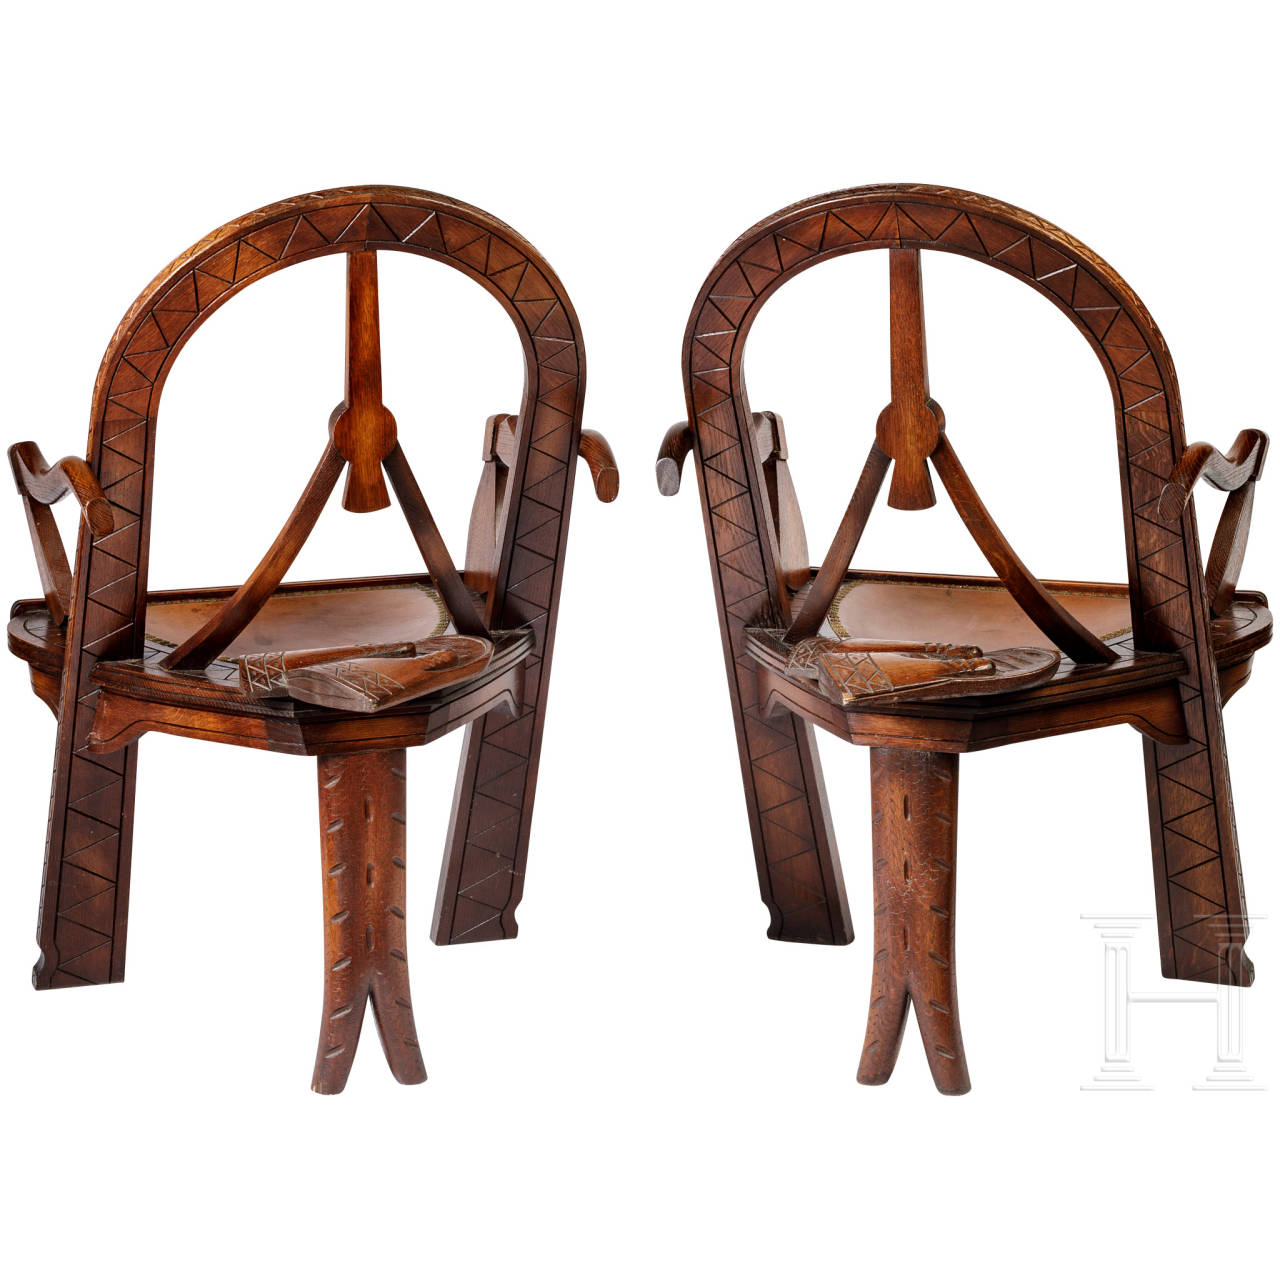 """Two carved armchairs in Russian style """"bow, axes and mittens"""", after the well-known model of carver Vasiliy Shutov, Russia, circa 1900"""